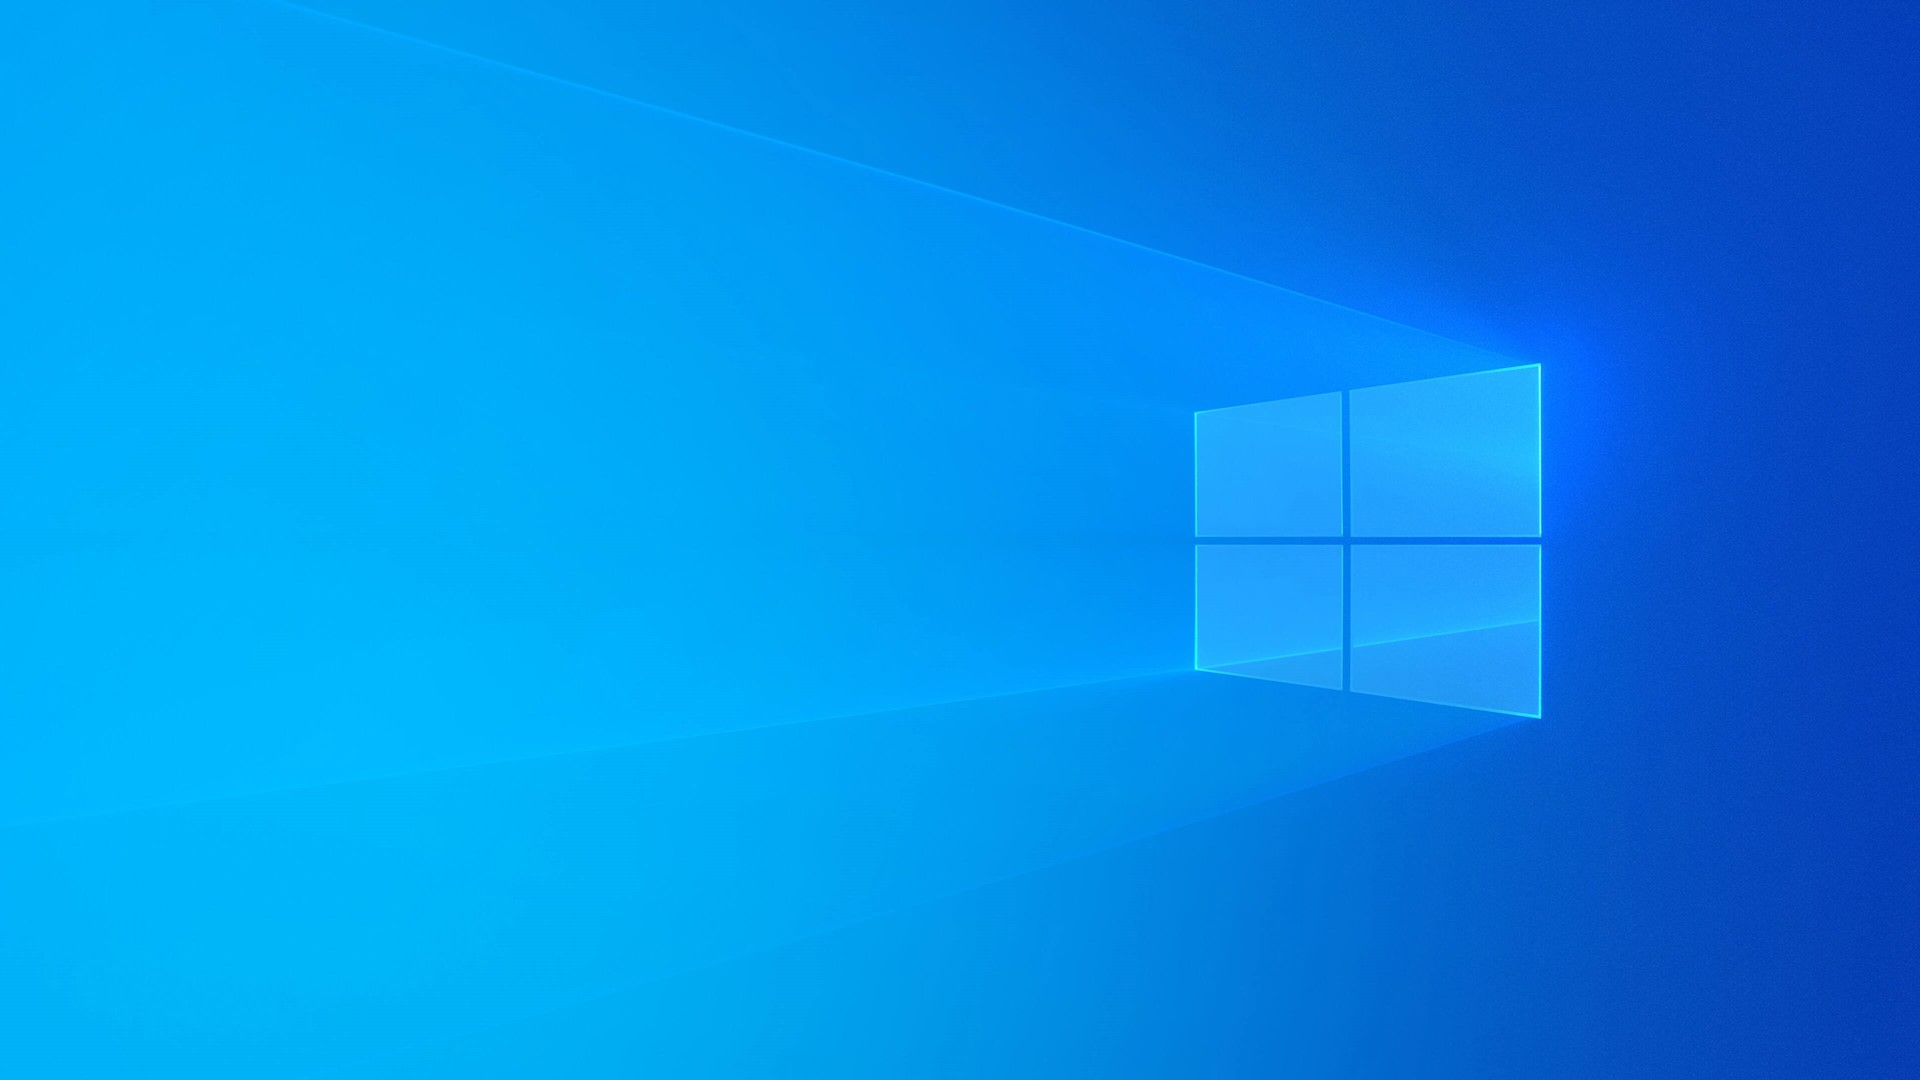 New Default Windows 10 Light Theme Wallpaper Now Available At